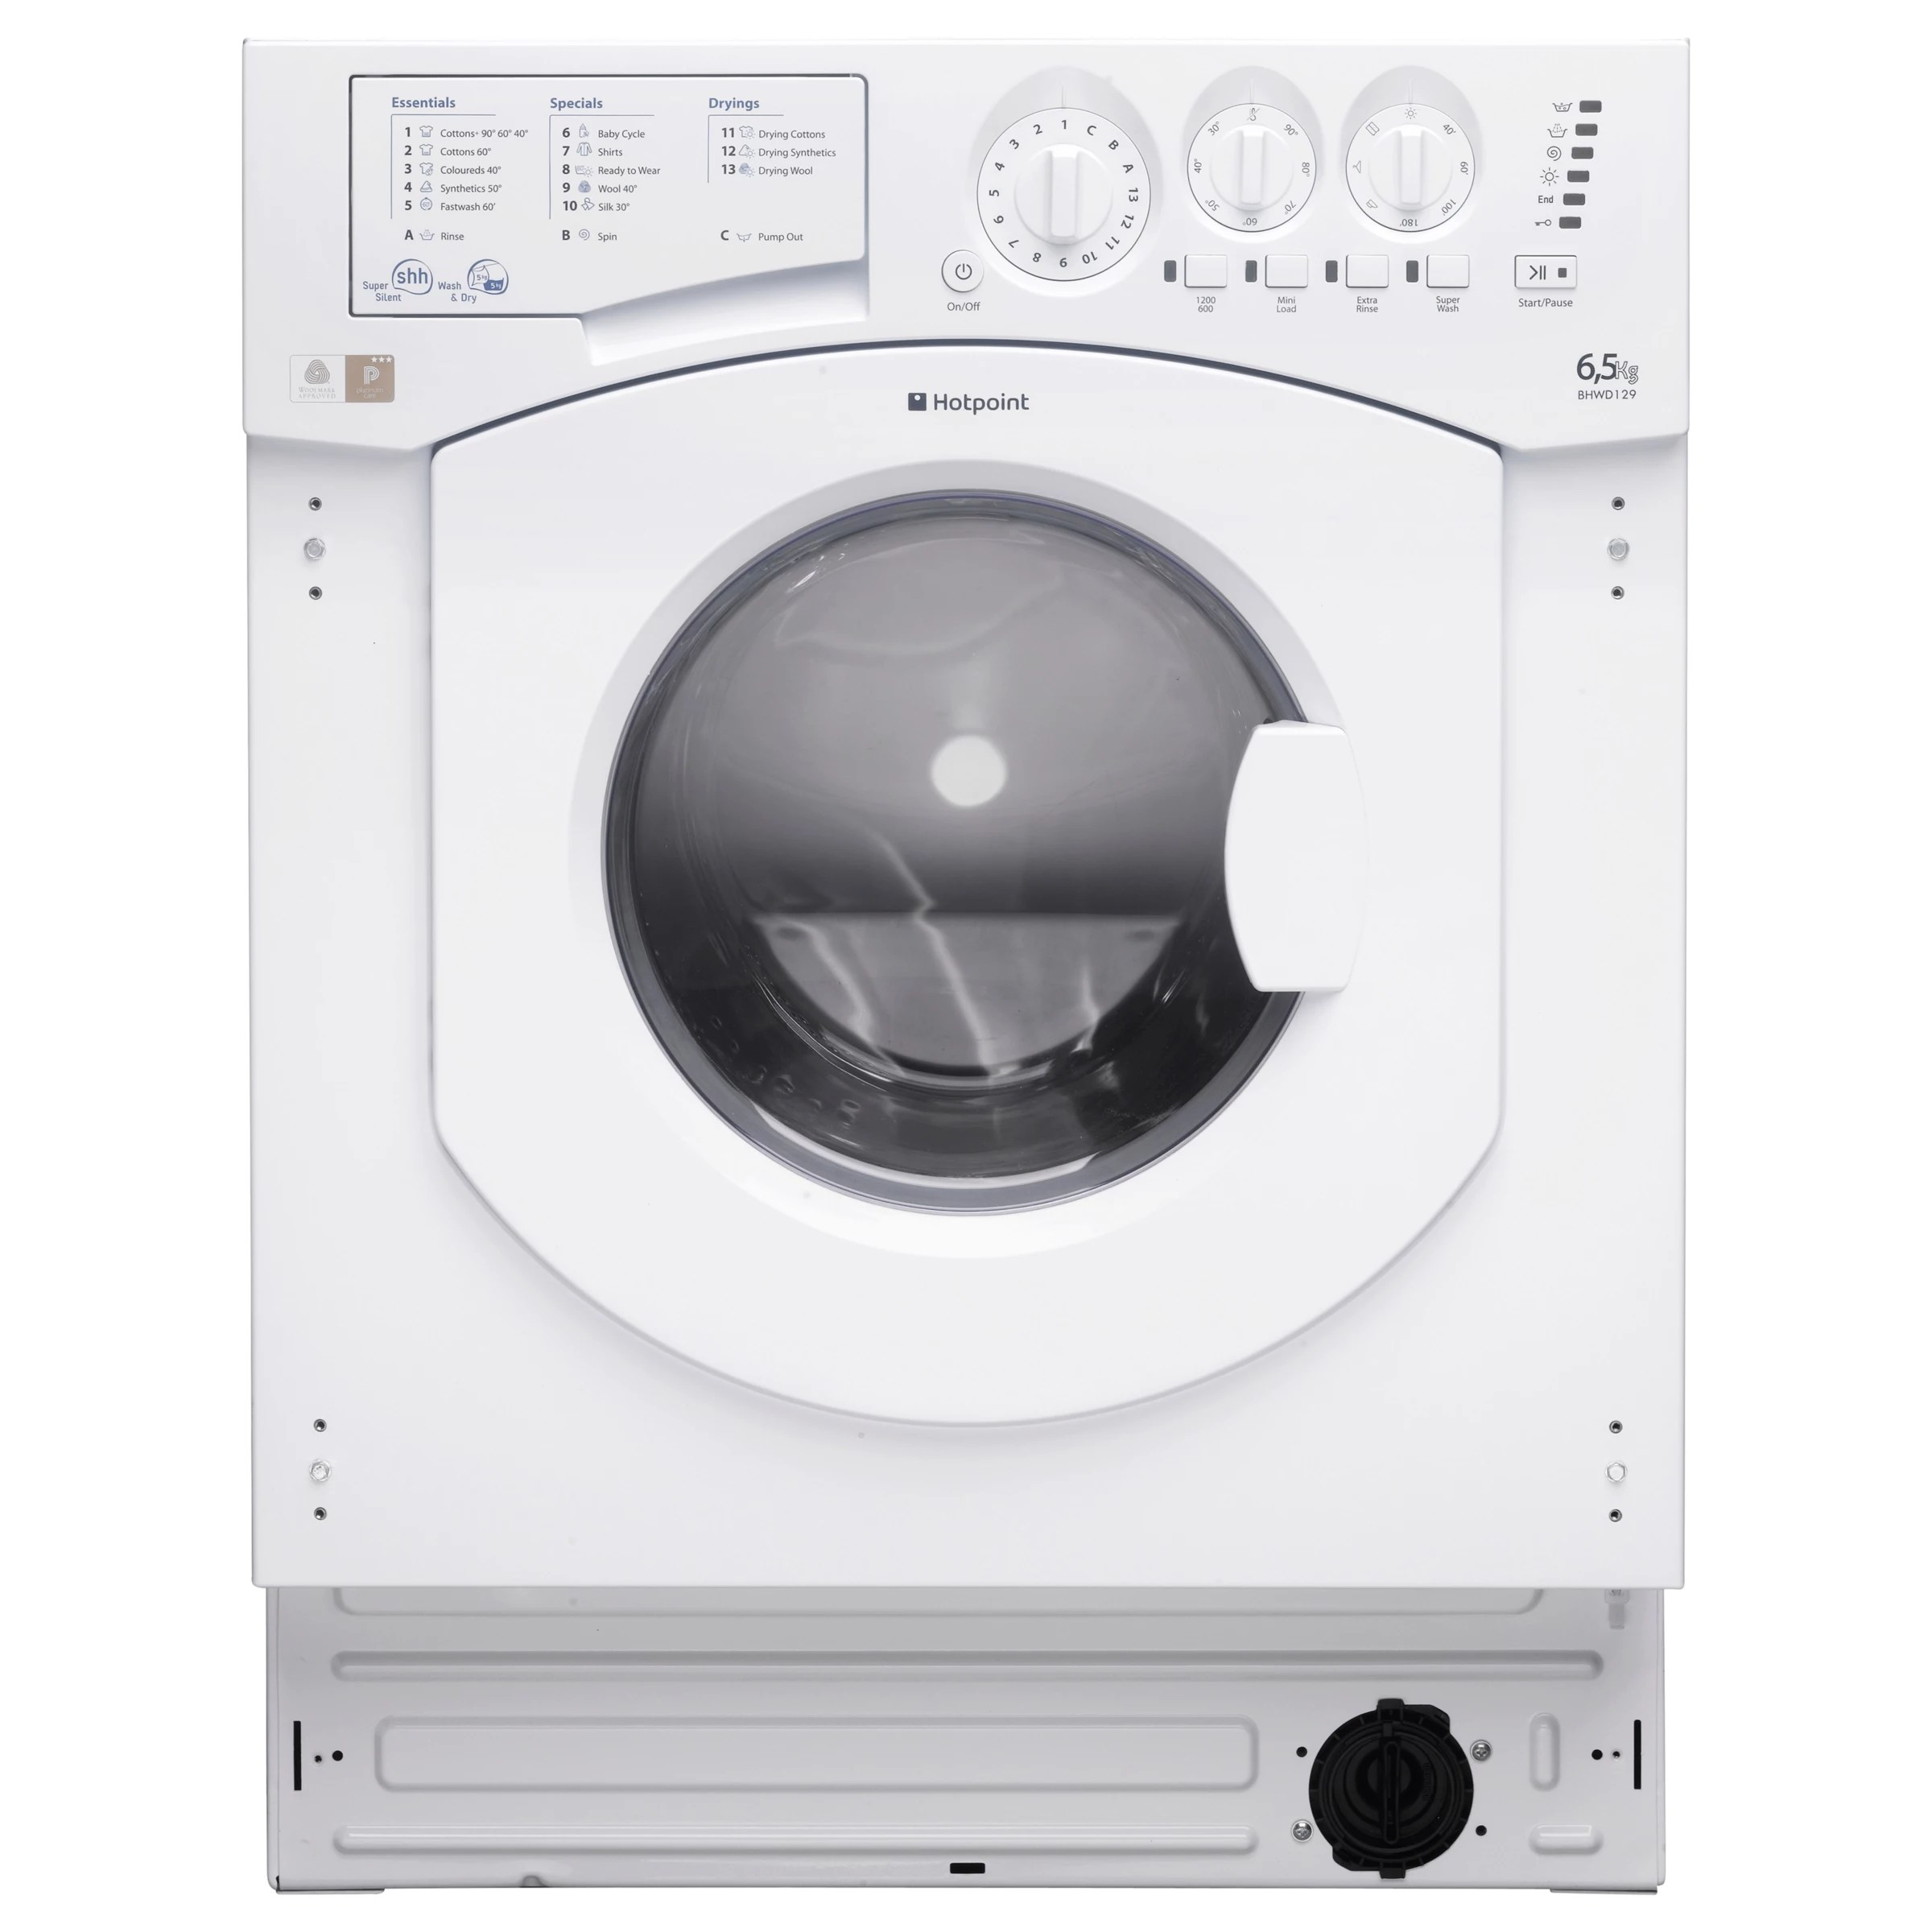 small resolution of buy hotpoint bhwd129 aquarius integrated washer dryer white online at johnlewis com